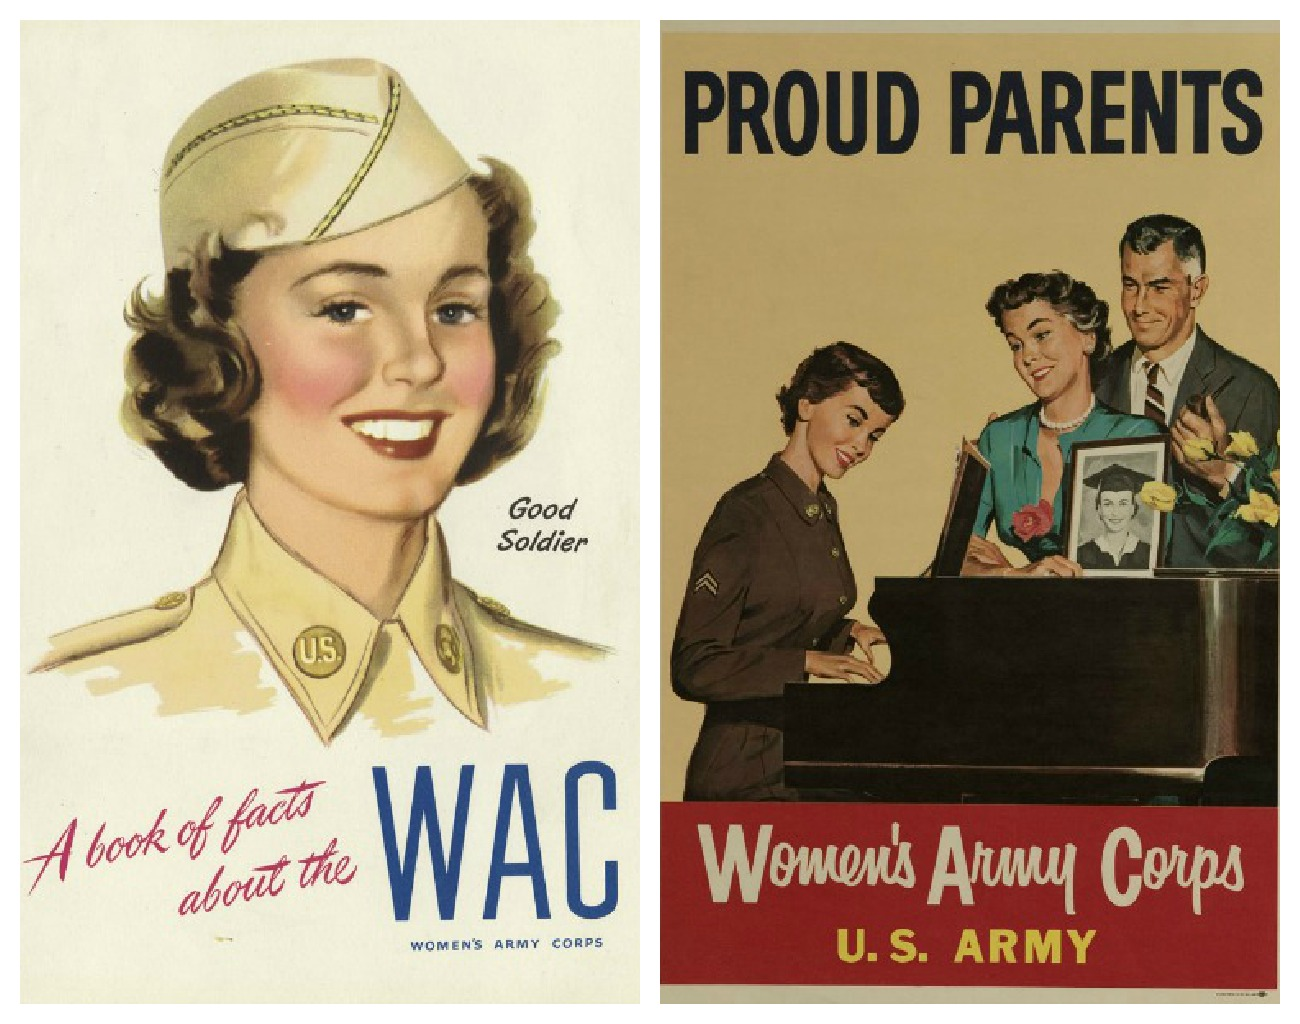 http://envisioningtheamericandream.files.wordpress.com/2013/02/wwii-wacs-proud-parents.jpg